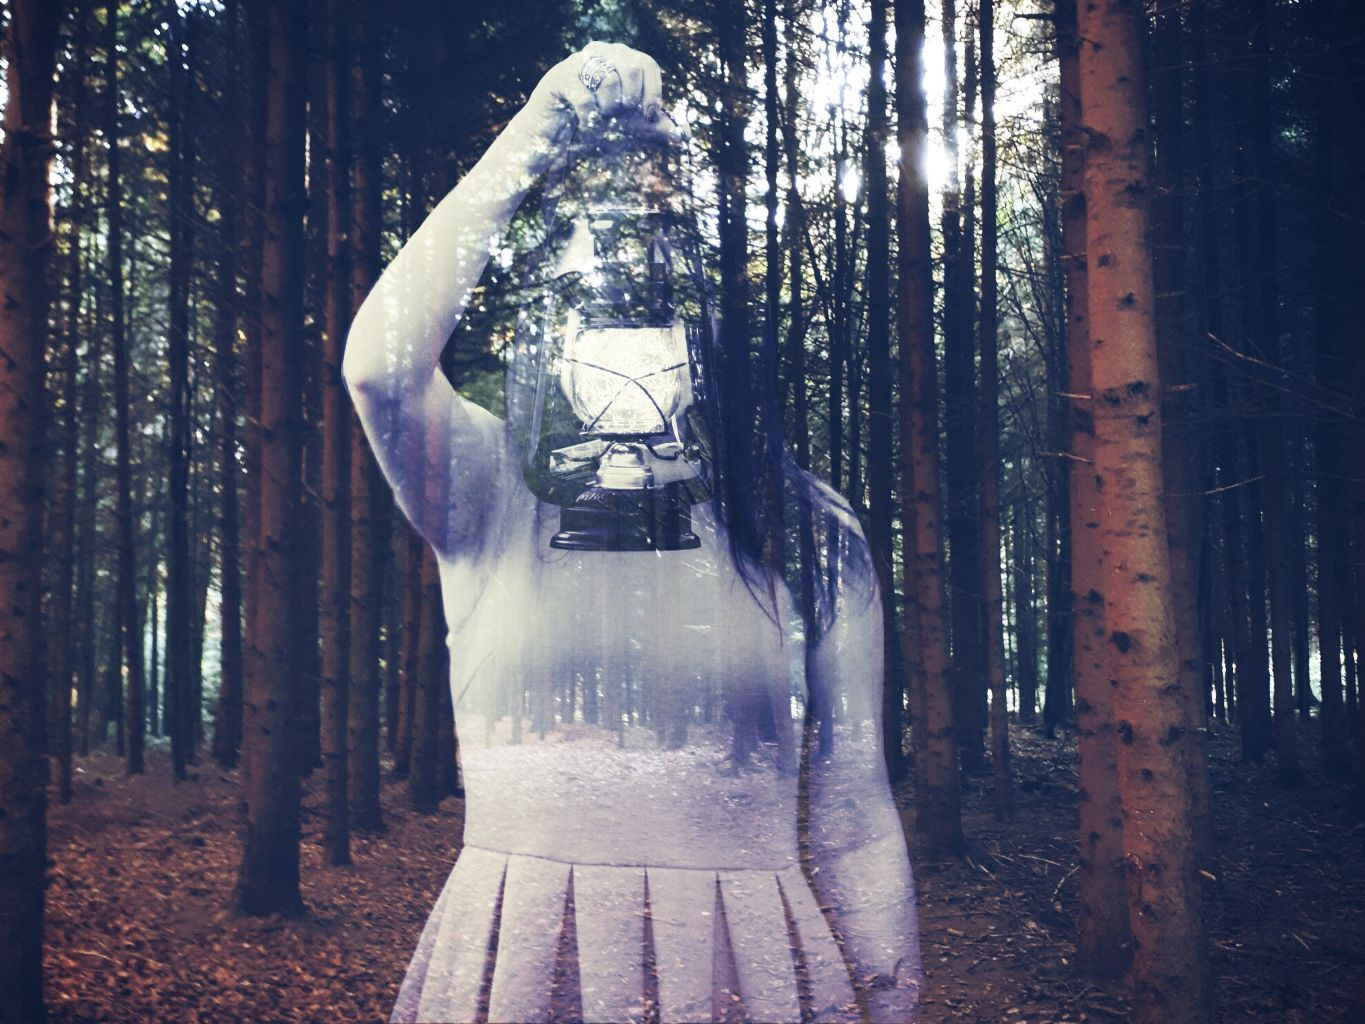 ghost edit of a girl standing in the forest made with picsart